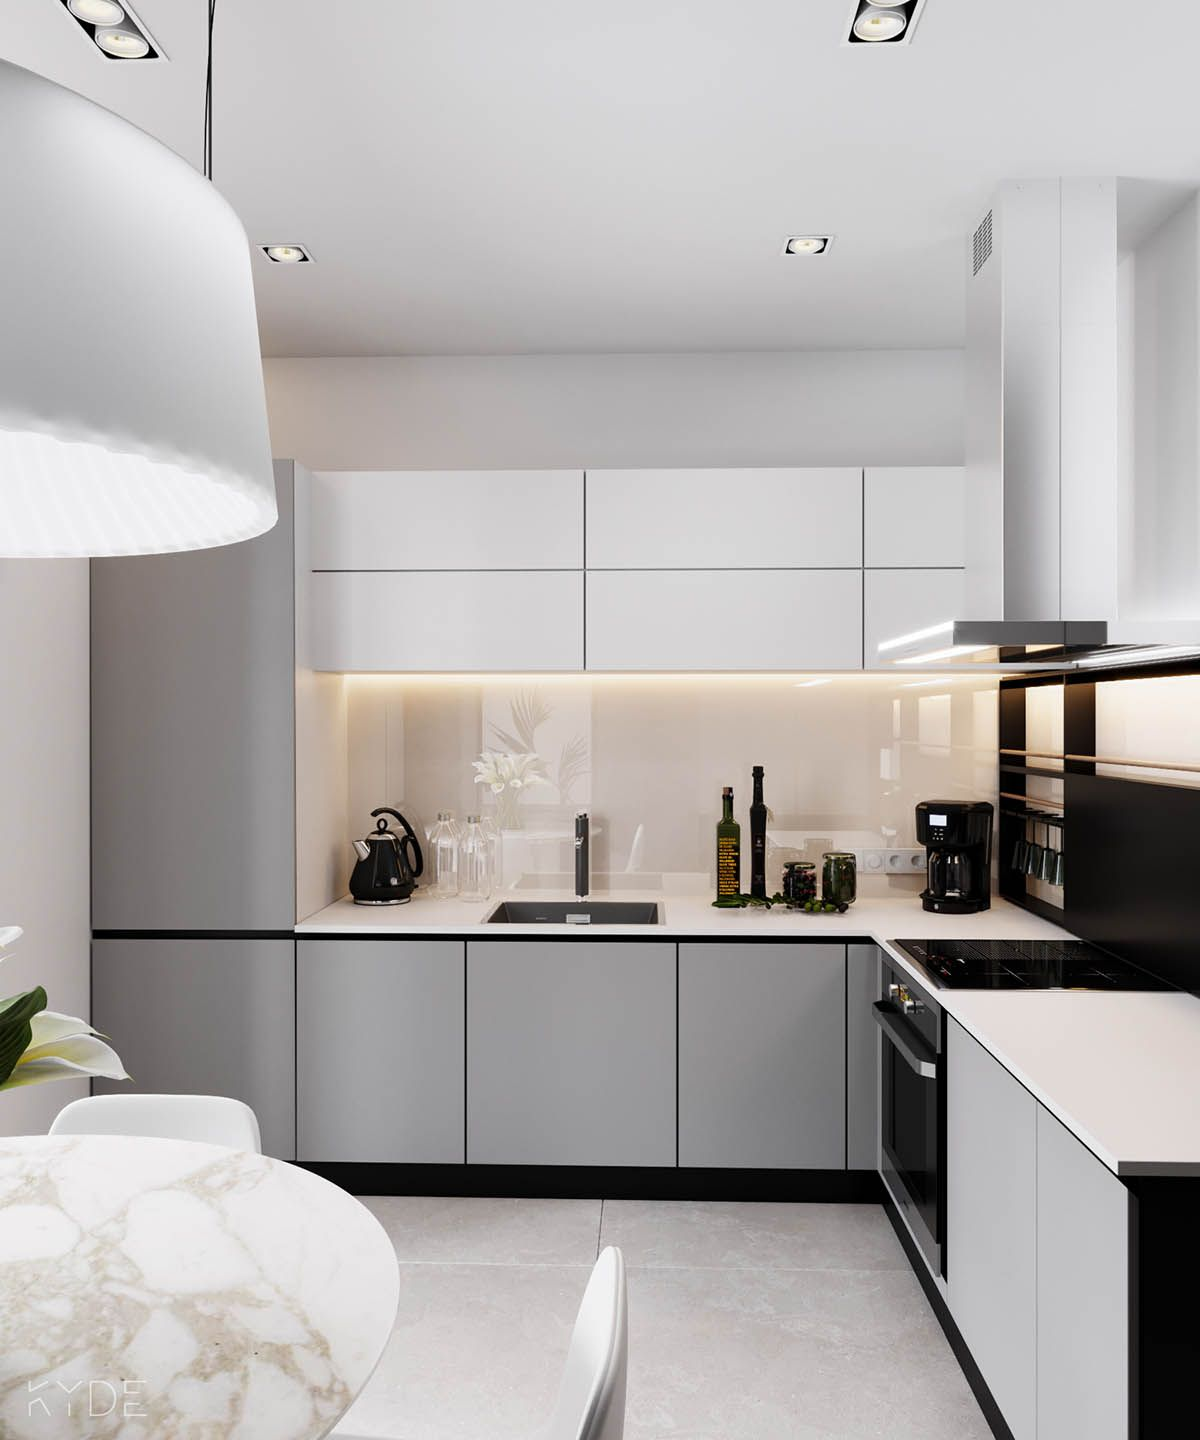 3 Modern Home Interiors Under 70 Square Metres (750 Square Feet ...